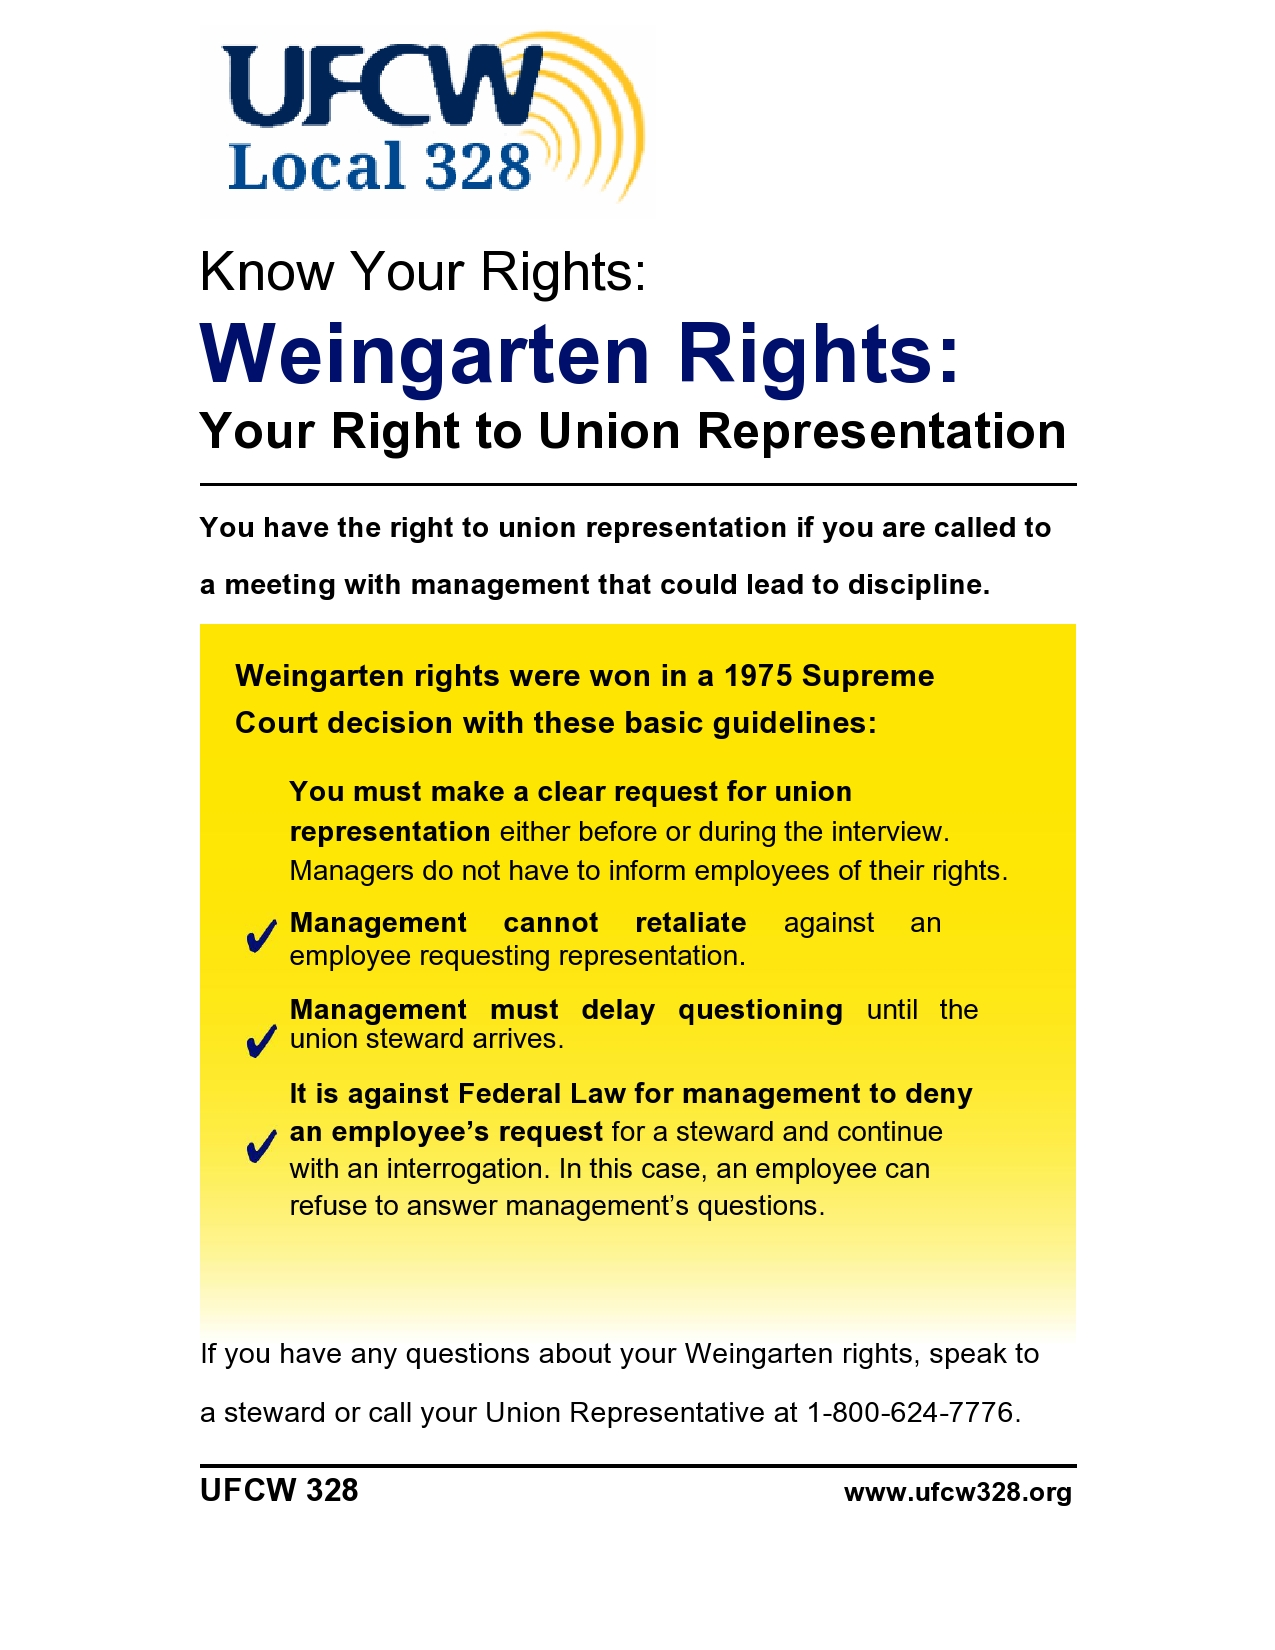 weingarten rights for website-page0001